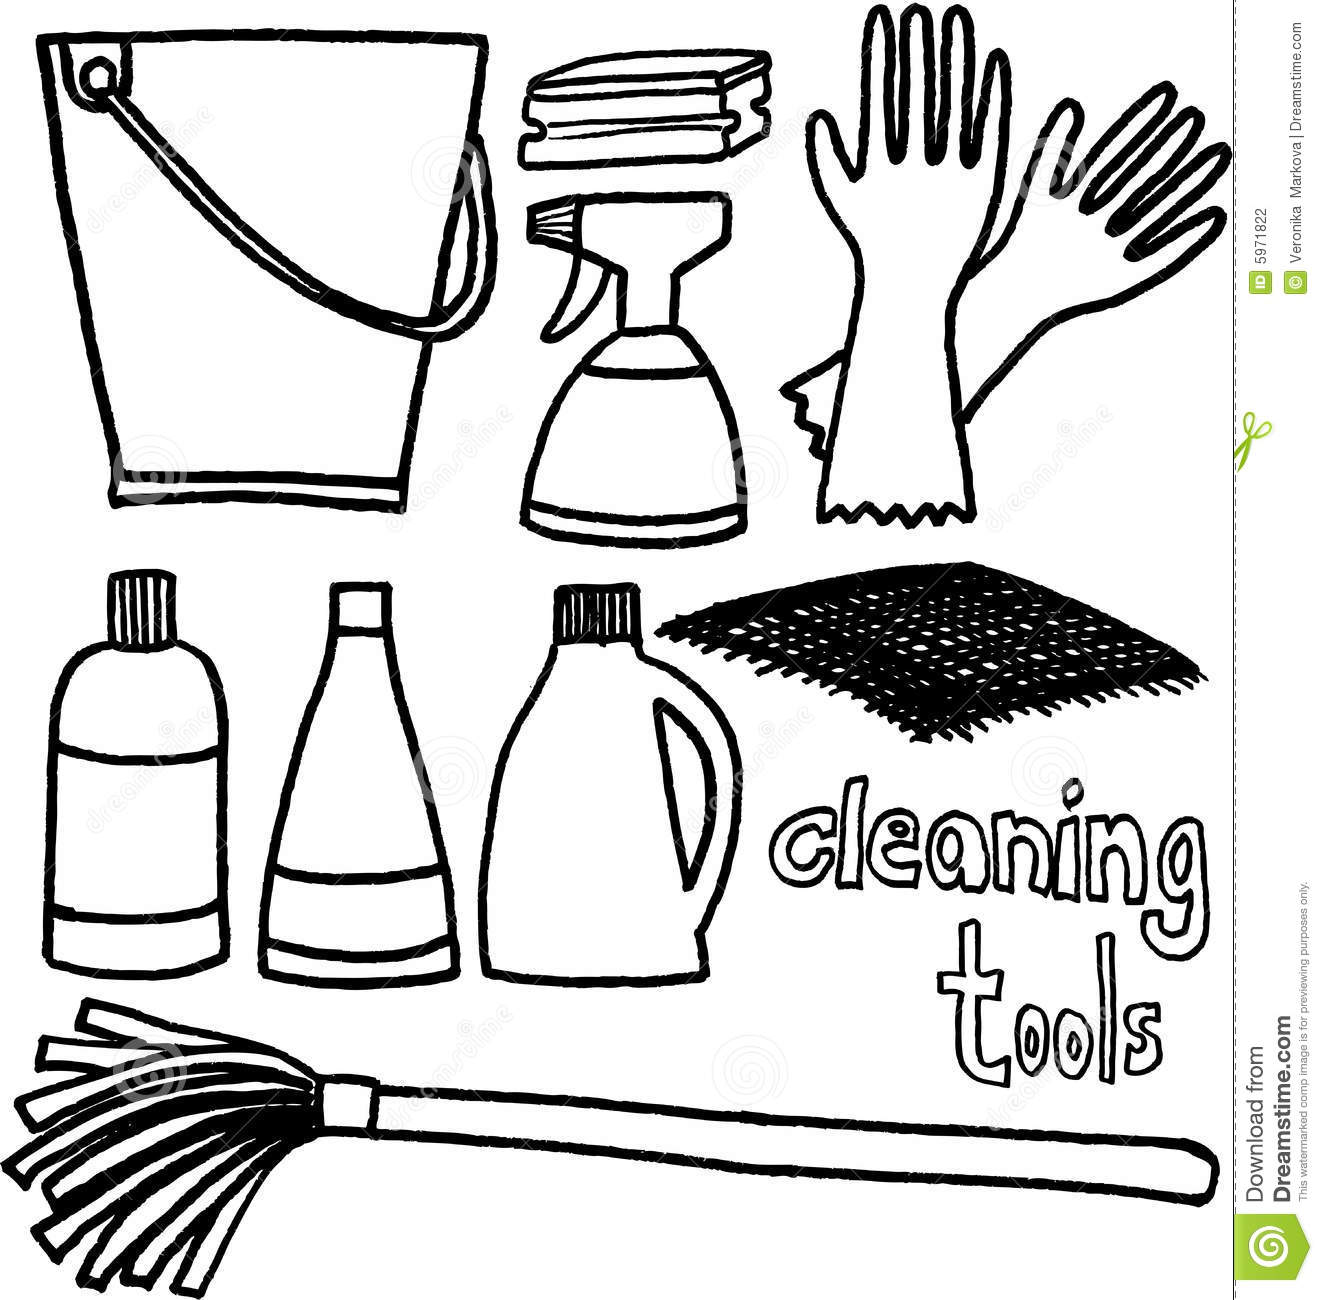 Cleaning tools stock vector. Image of swab, articles